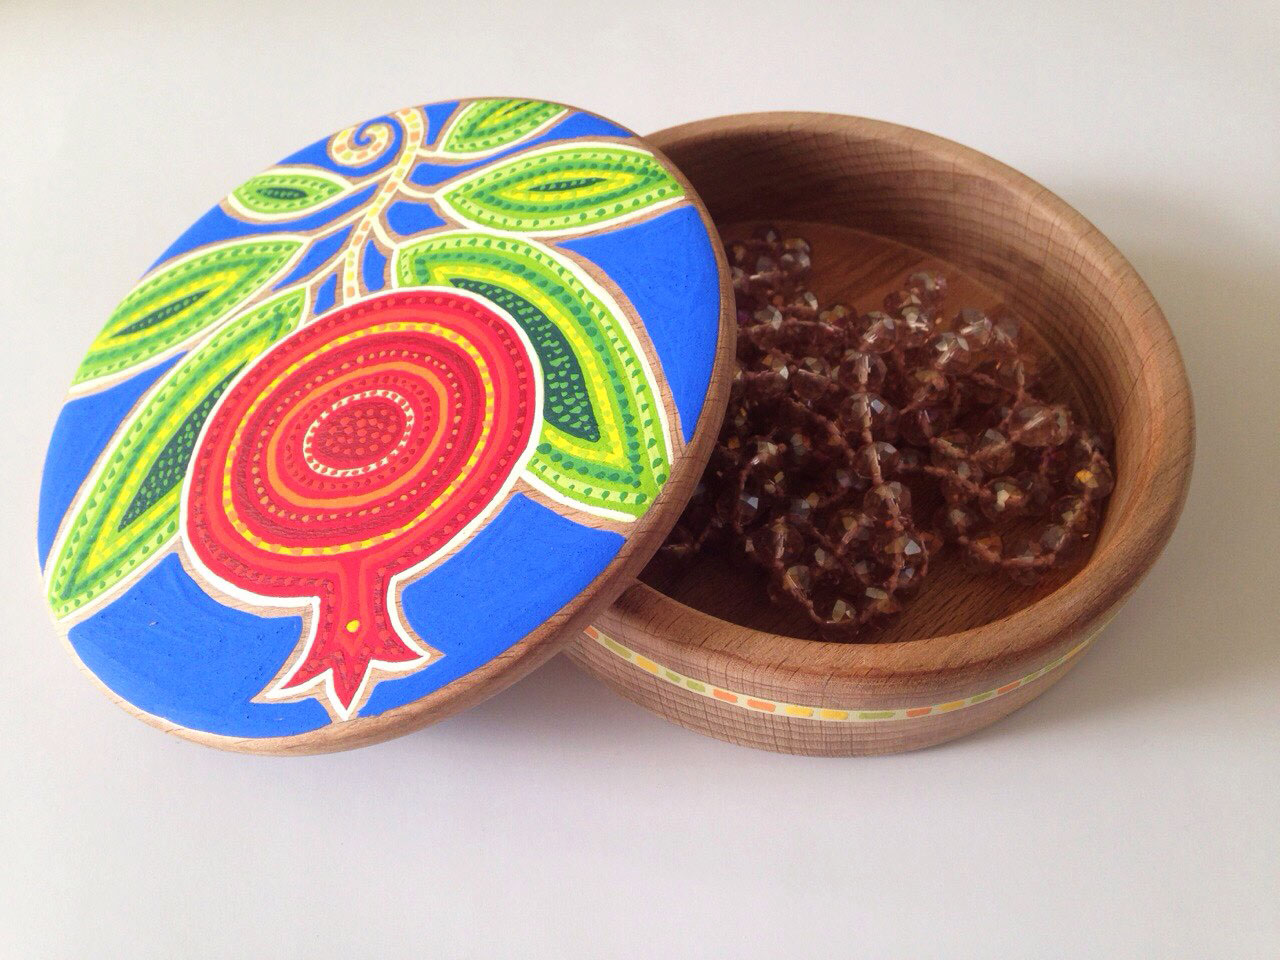 Boho chic jewelry box. Boho dream